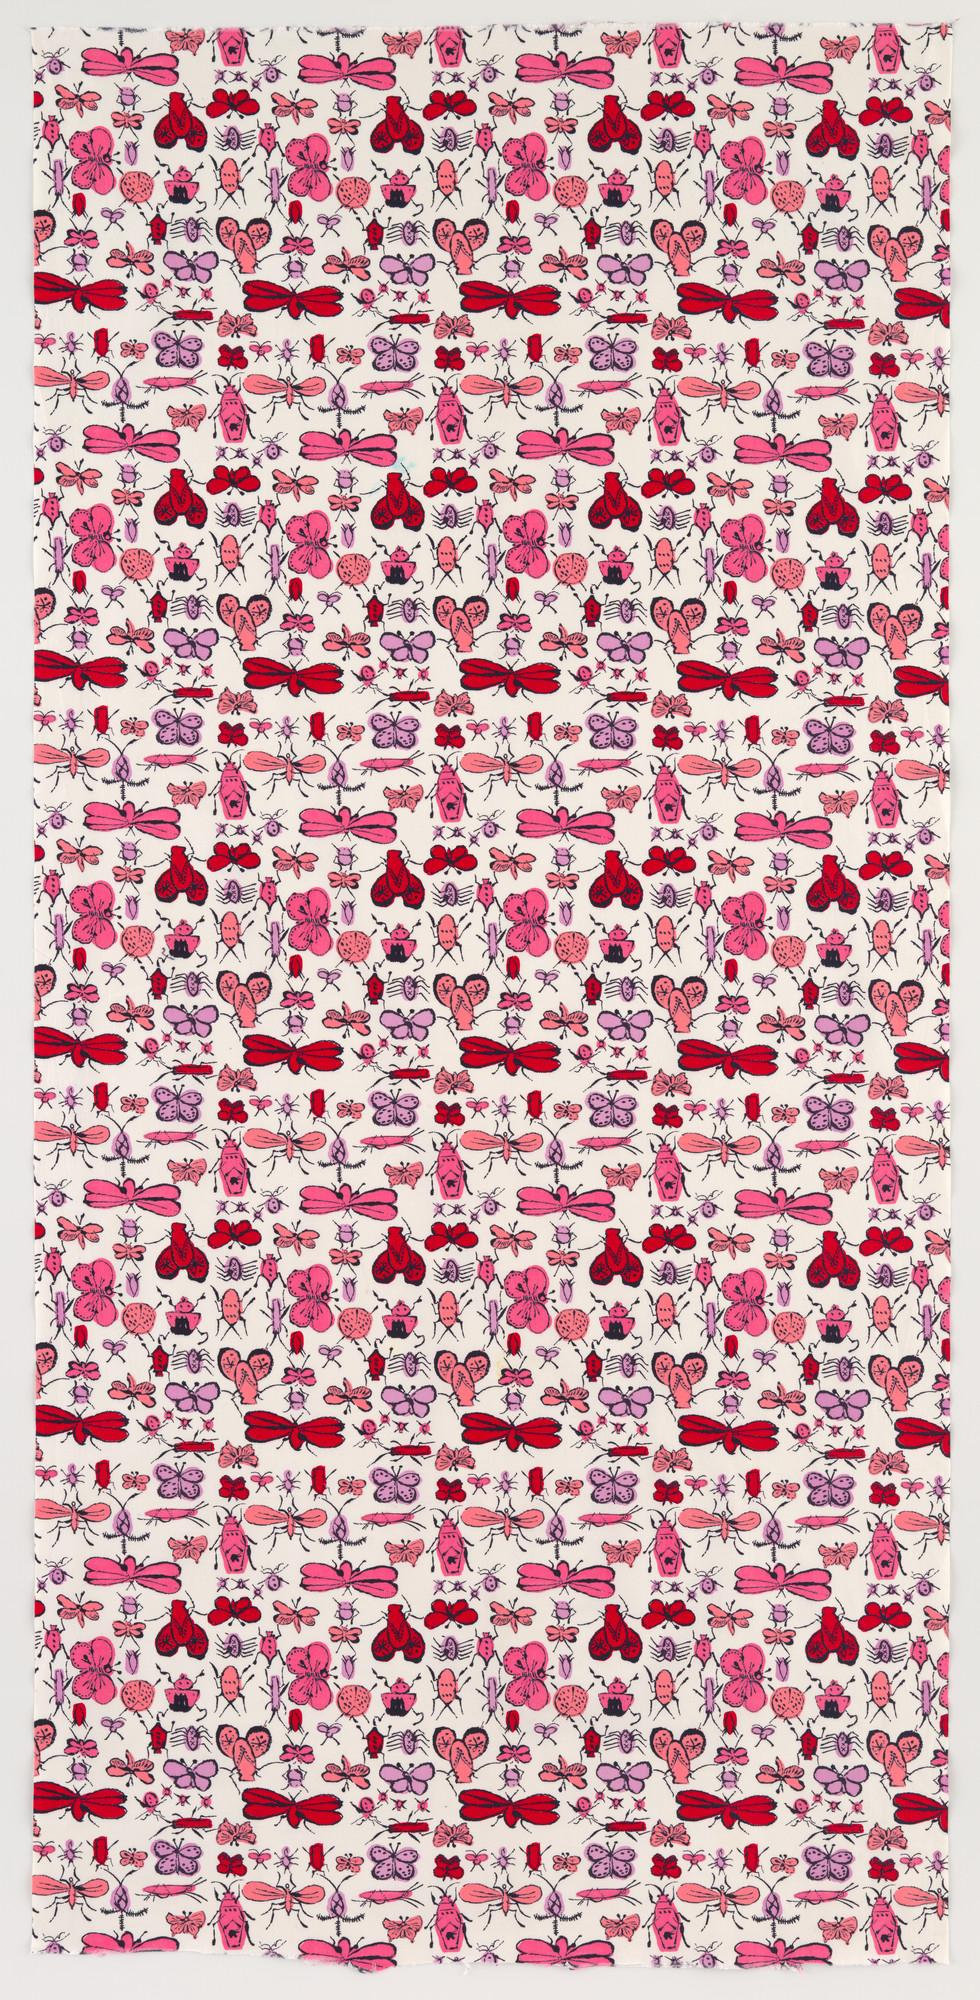 Andy Warhol. Happy Bug Day textile. c. 1955